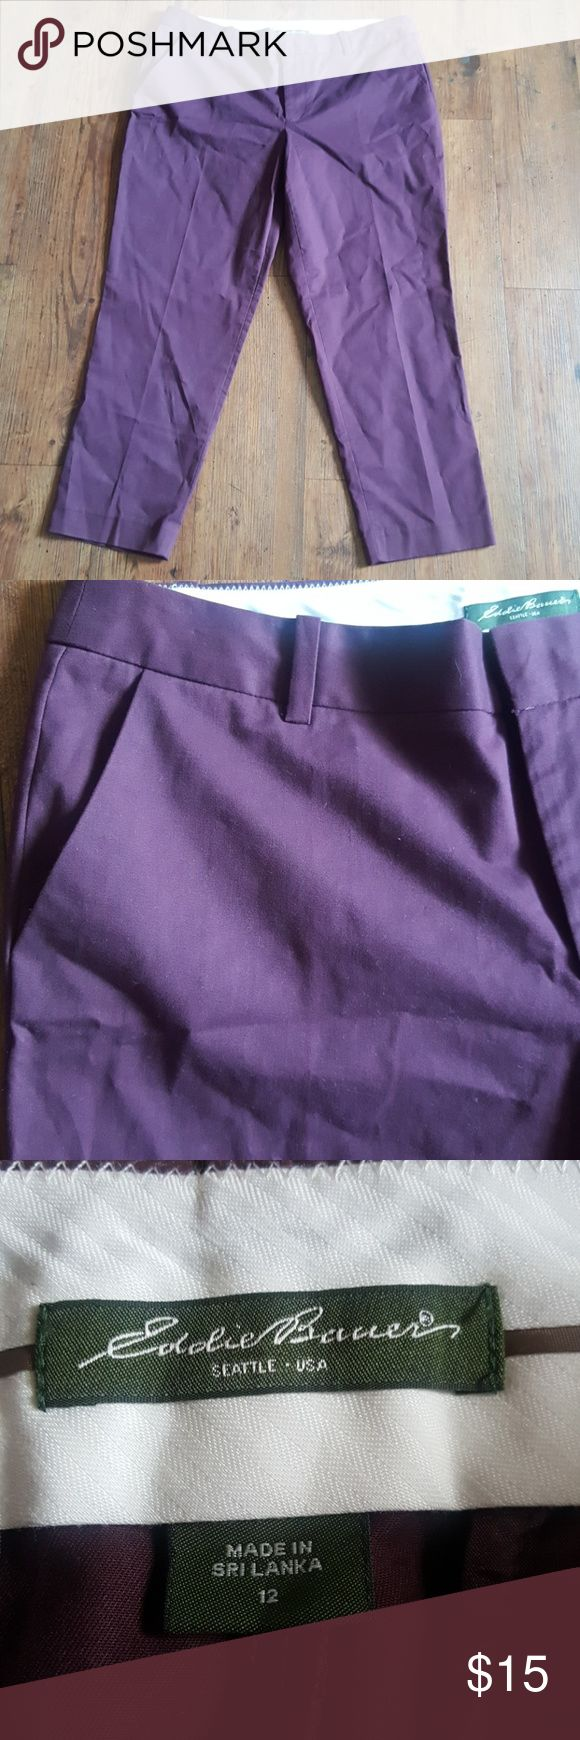 Eddie Bauer Burgandy Pants Dont let the pictures fool you.  Burgandy colored pants by Eddie Bauer size 12.  Two side and two back pockets.  Straight leg, no fading.  Inseam 24.5 inches. Eddie Bauer Pants Straight Leg